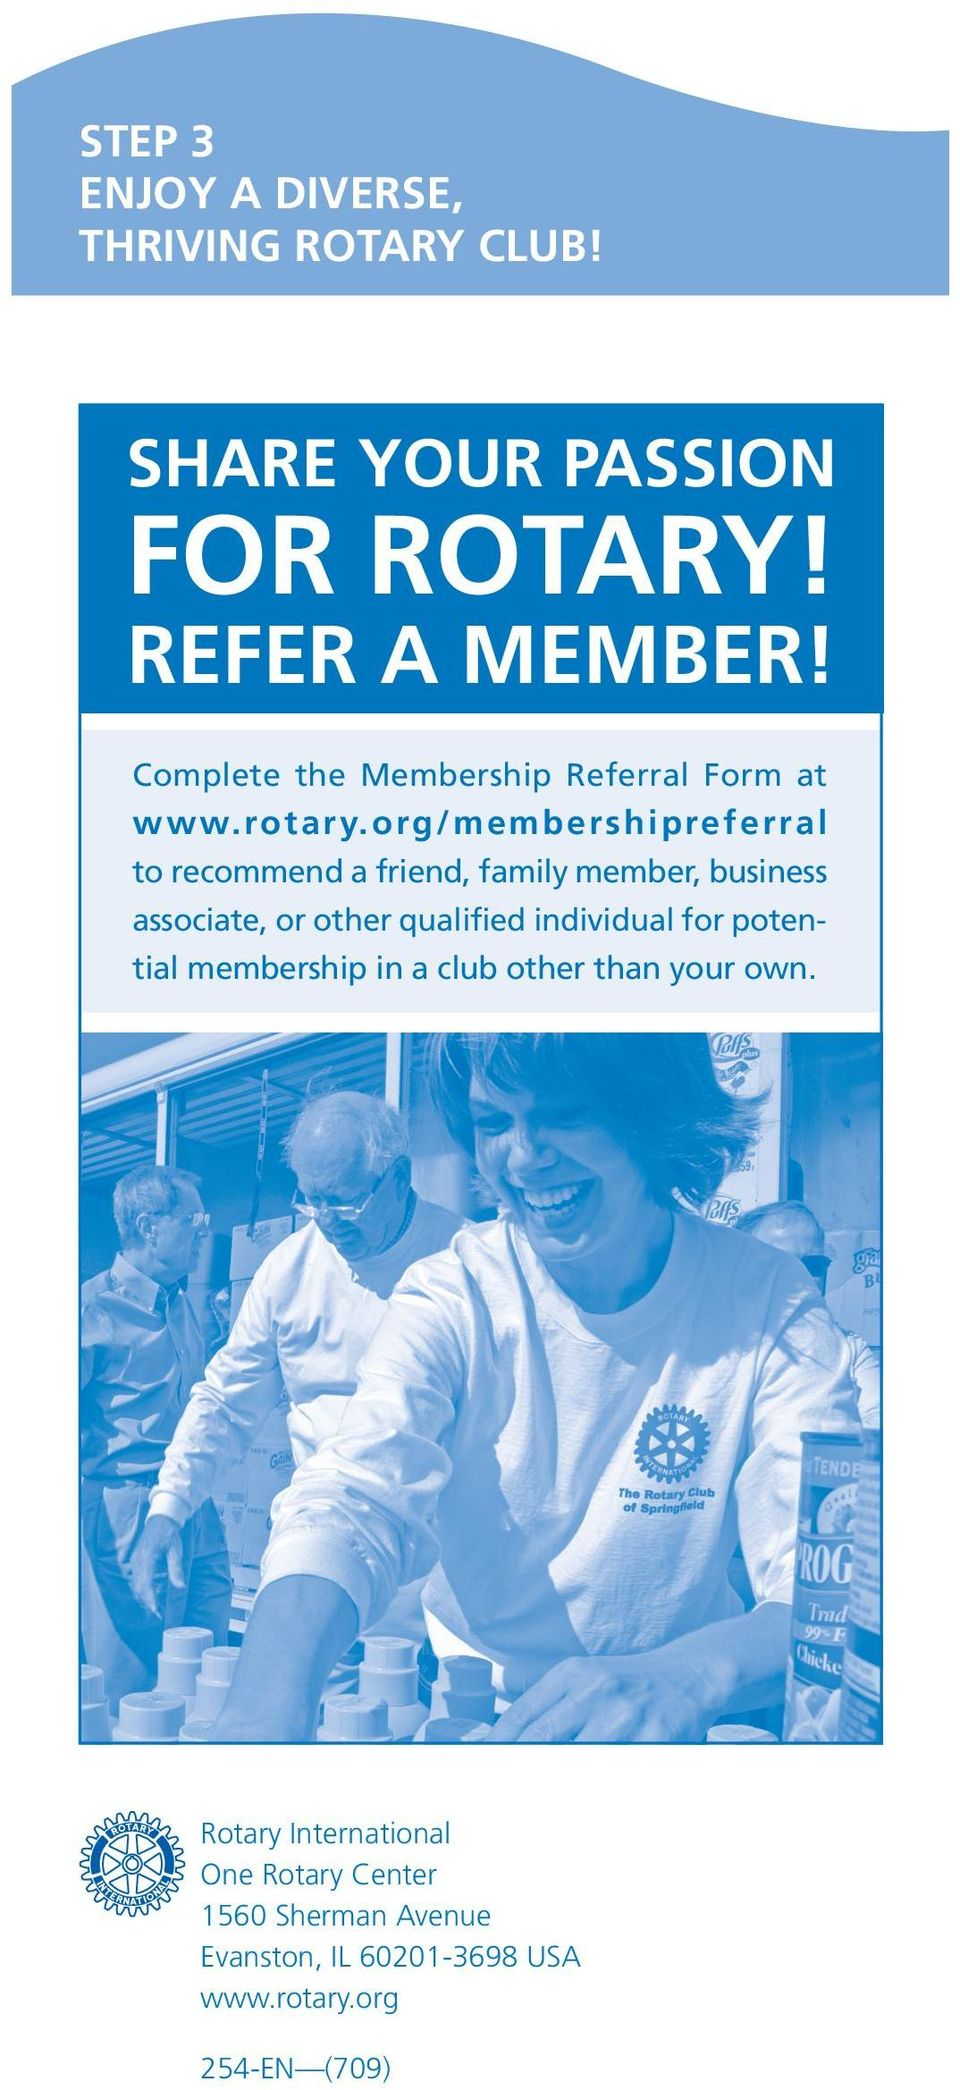 org/membershipreferral to recommend a friend, family member, business associate, or other qualified